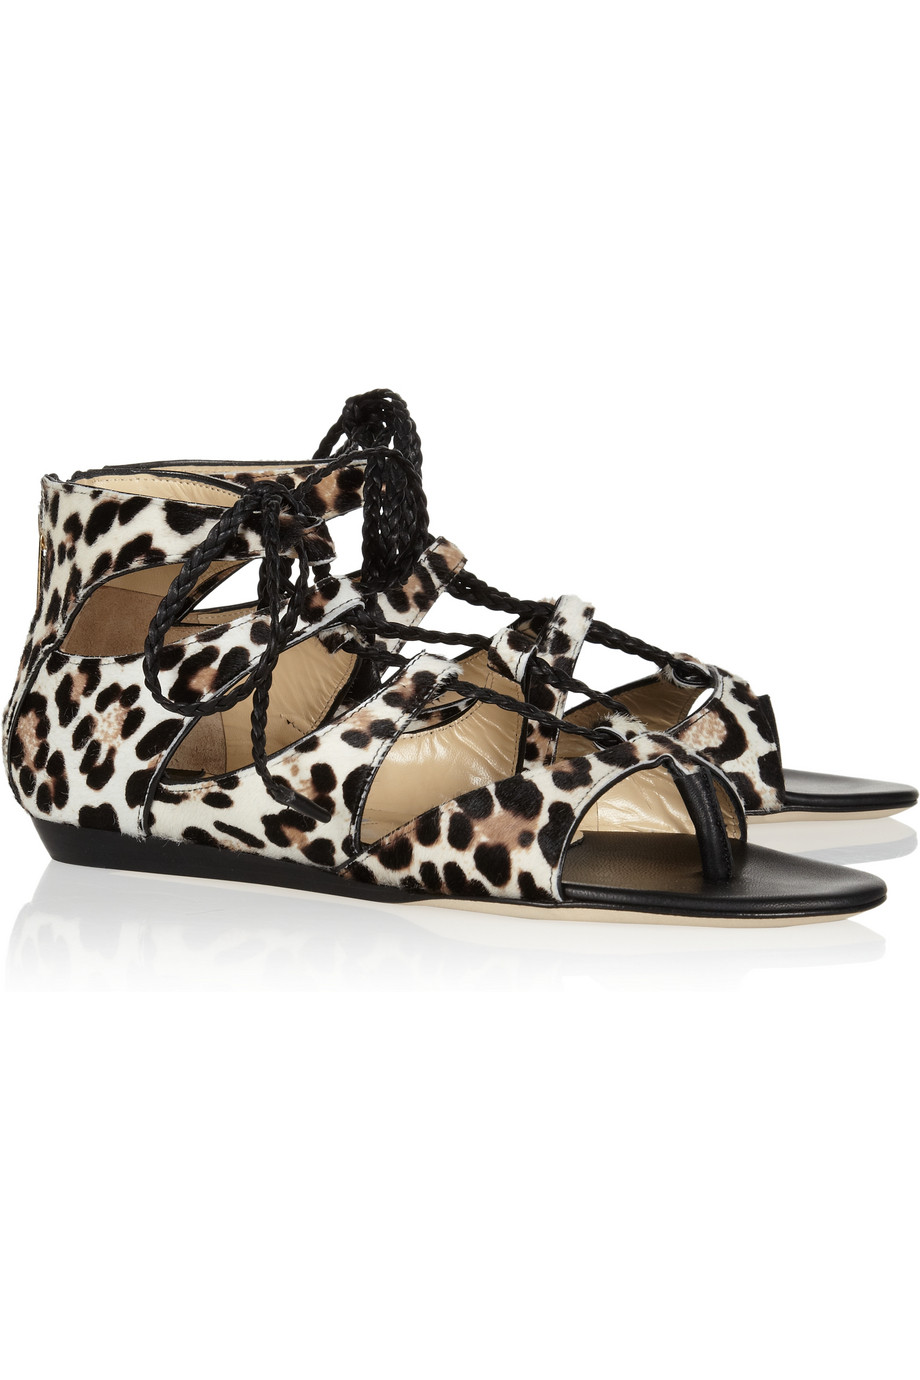 Jimmy Choo Leopard Print Calf Hair Sandals In Black Lyst